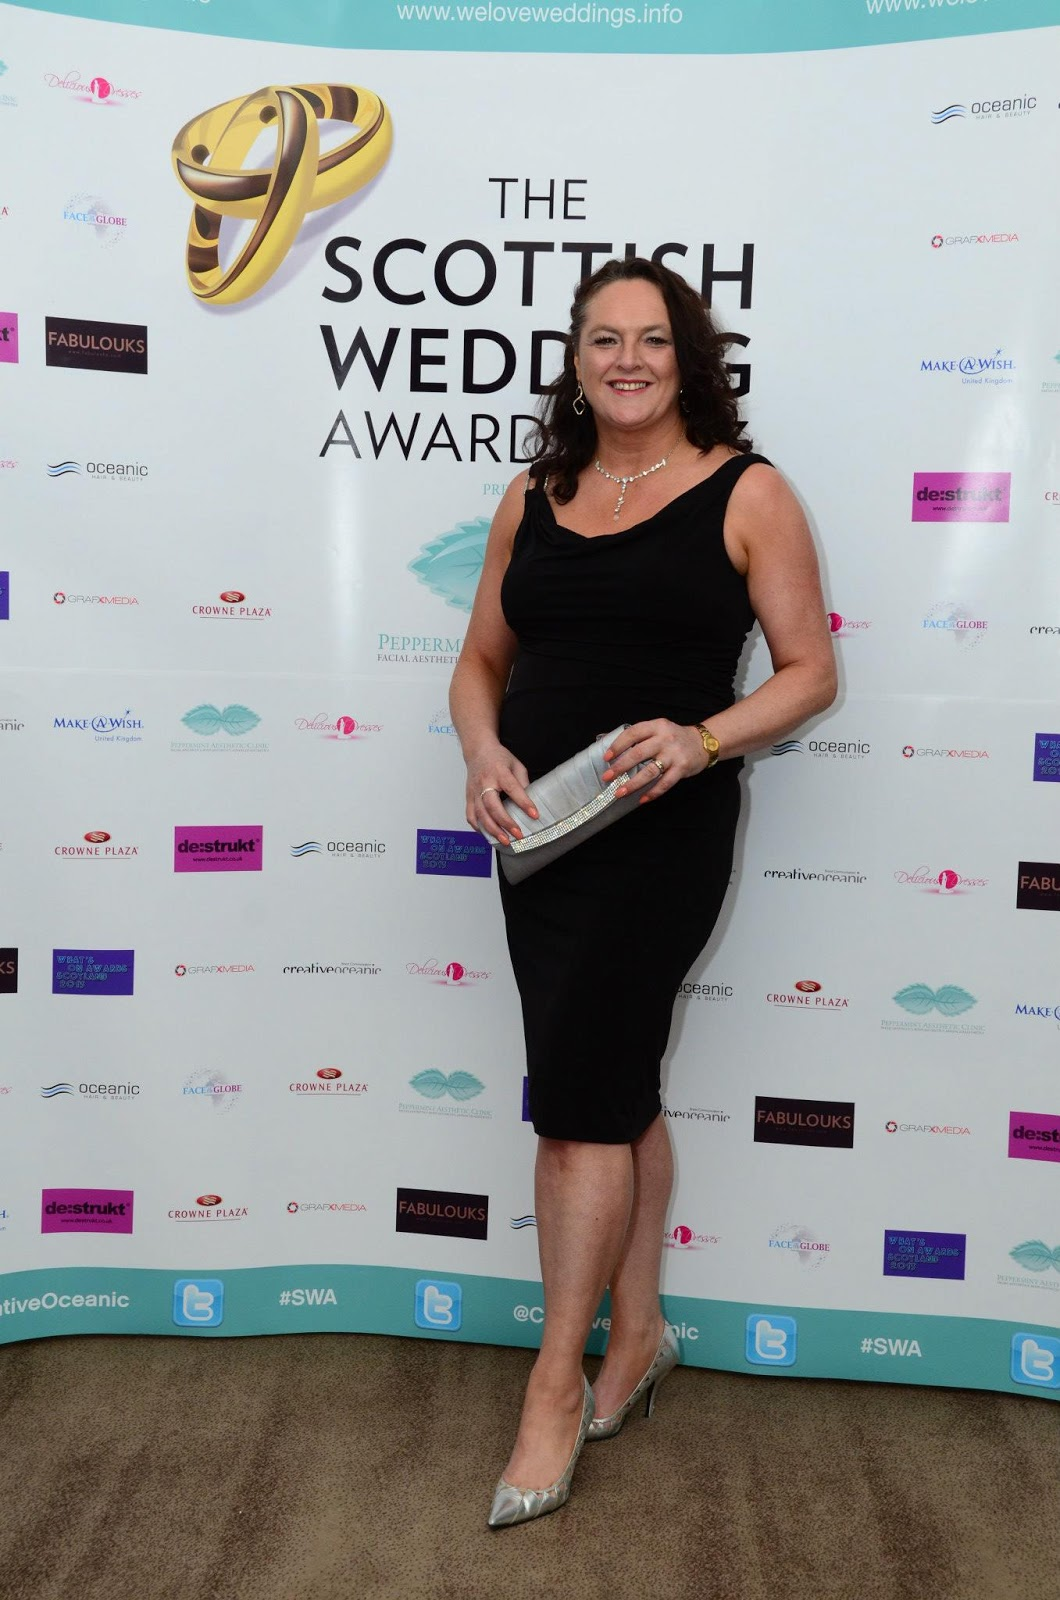 Then Days Later On The 30th April 2013 We Were Excited To Learn That Winners In Wedding Industry Experts Awards Best Planner